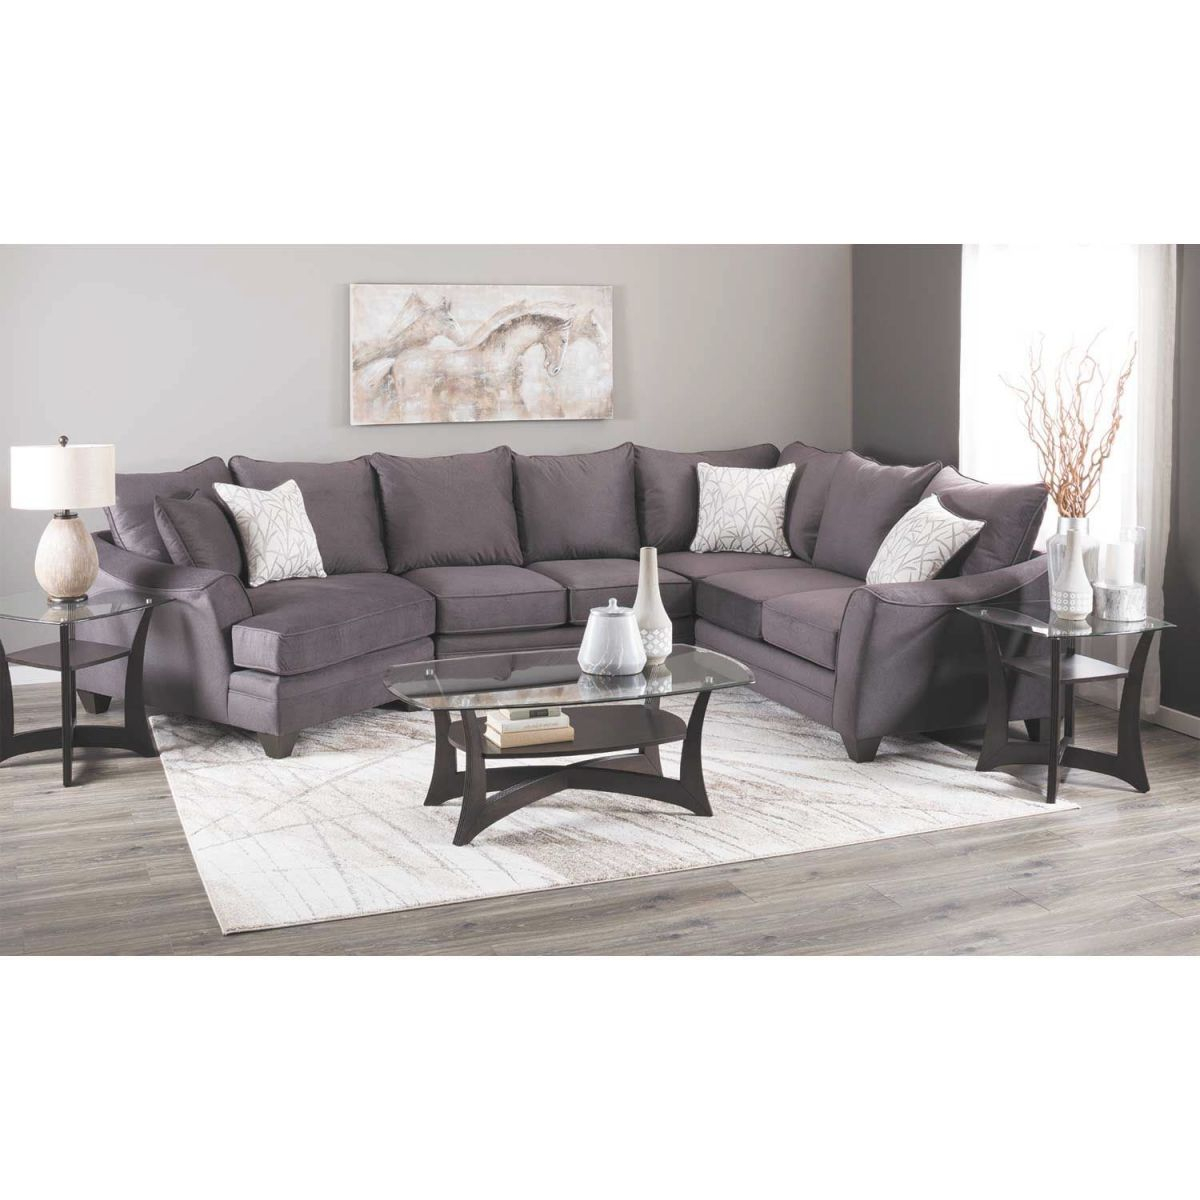 Flannel Seal 3 Piece Sectional With Raf Cuddler inside Lovely 3 Piece Sectional With Cuddler